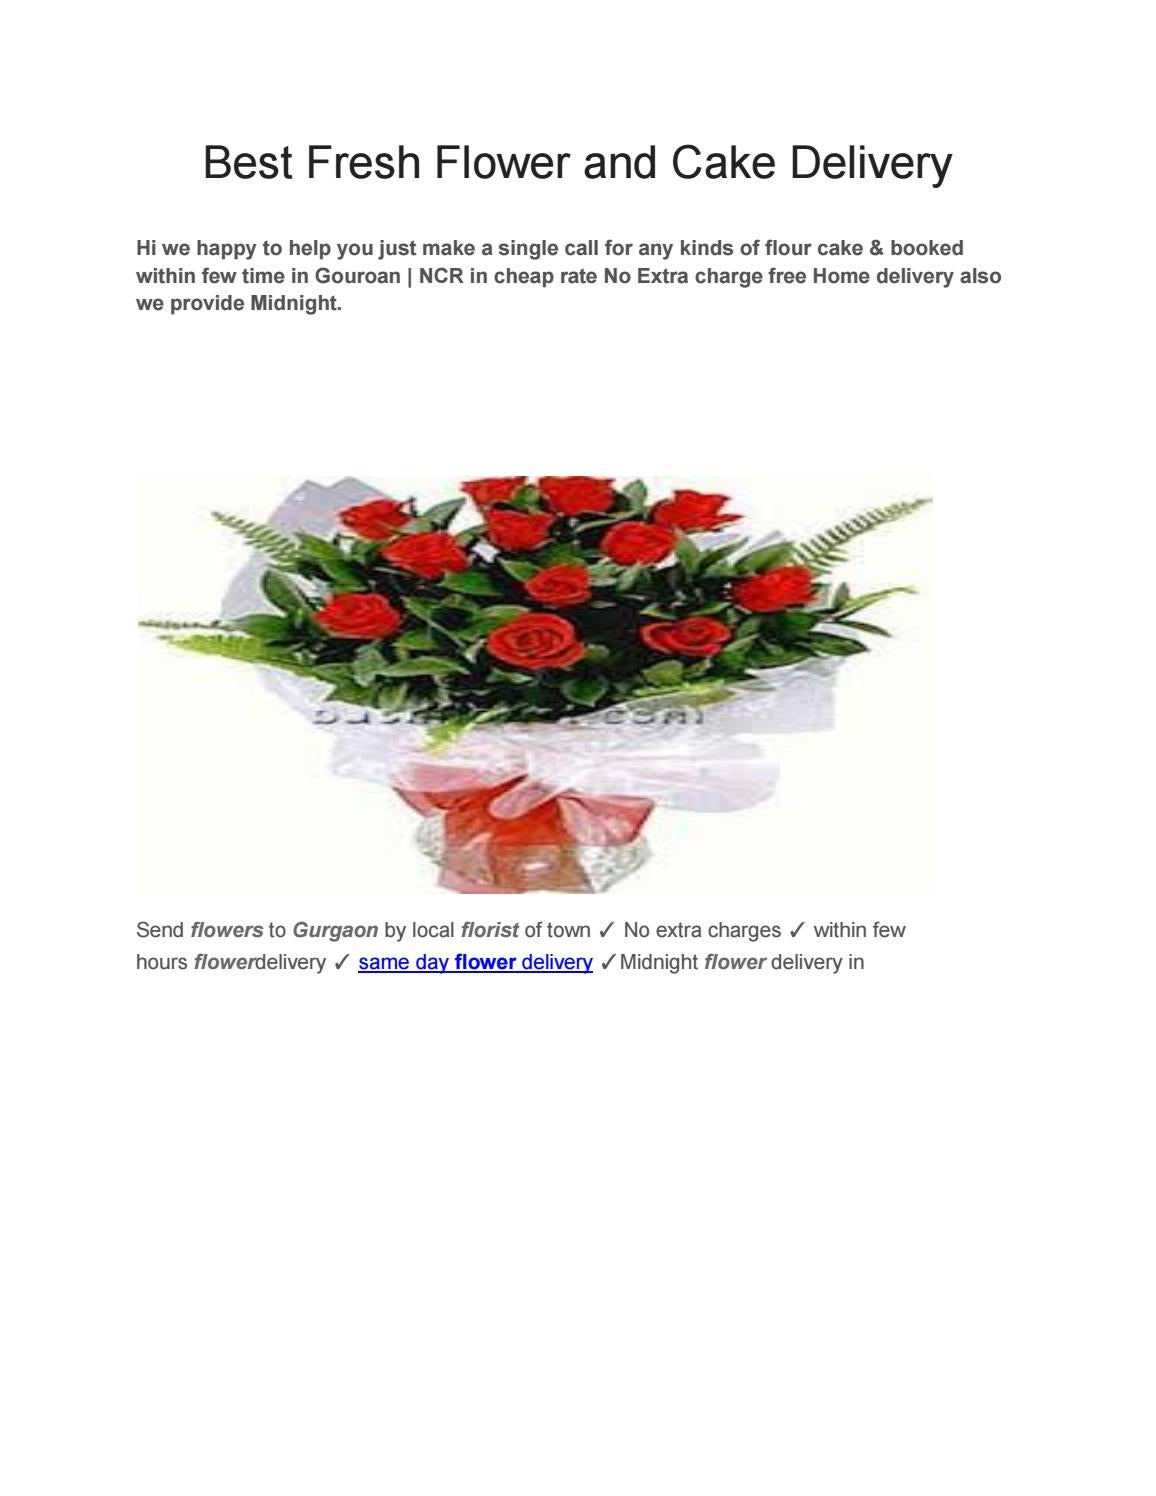 Best fresh flower and cake delivery by flower issuu izmirmasajfo